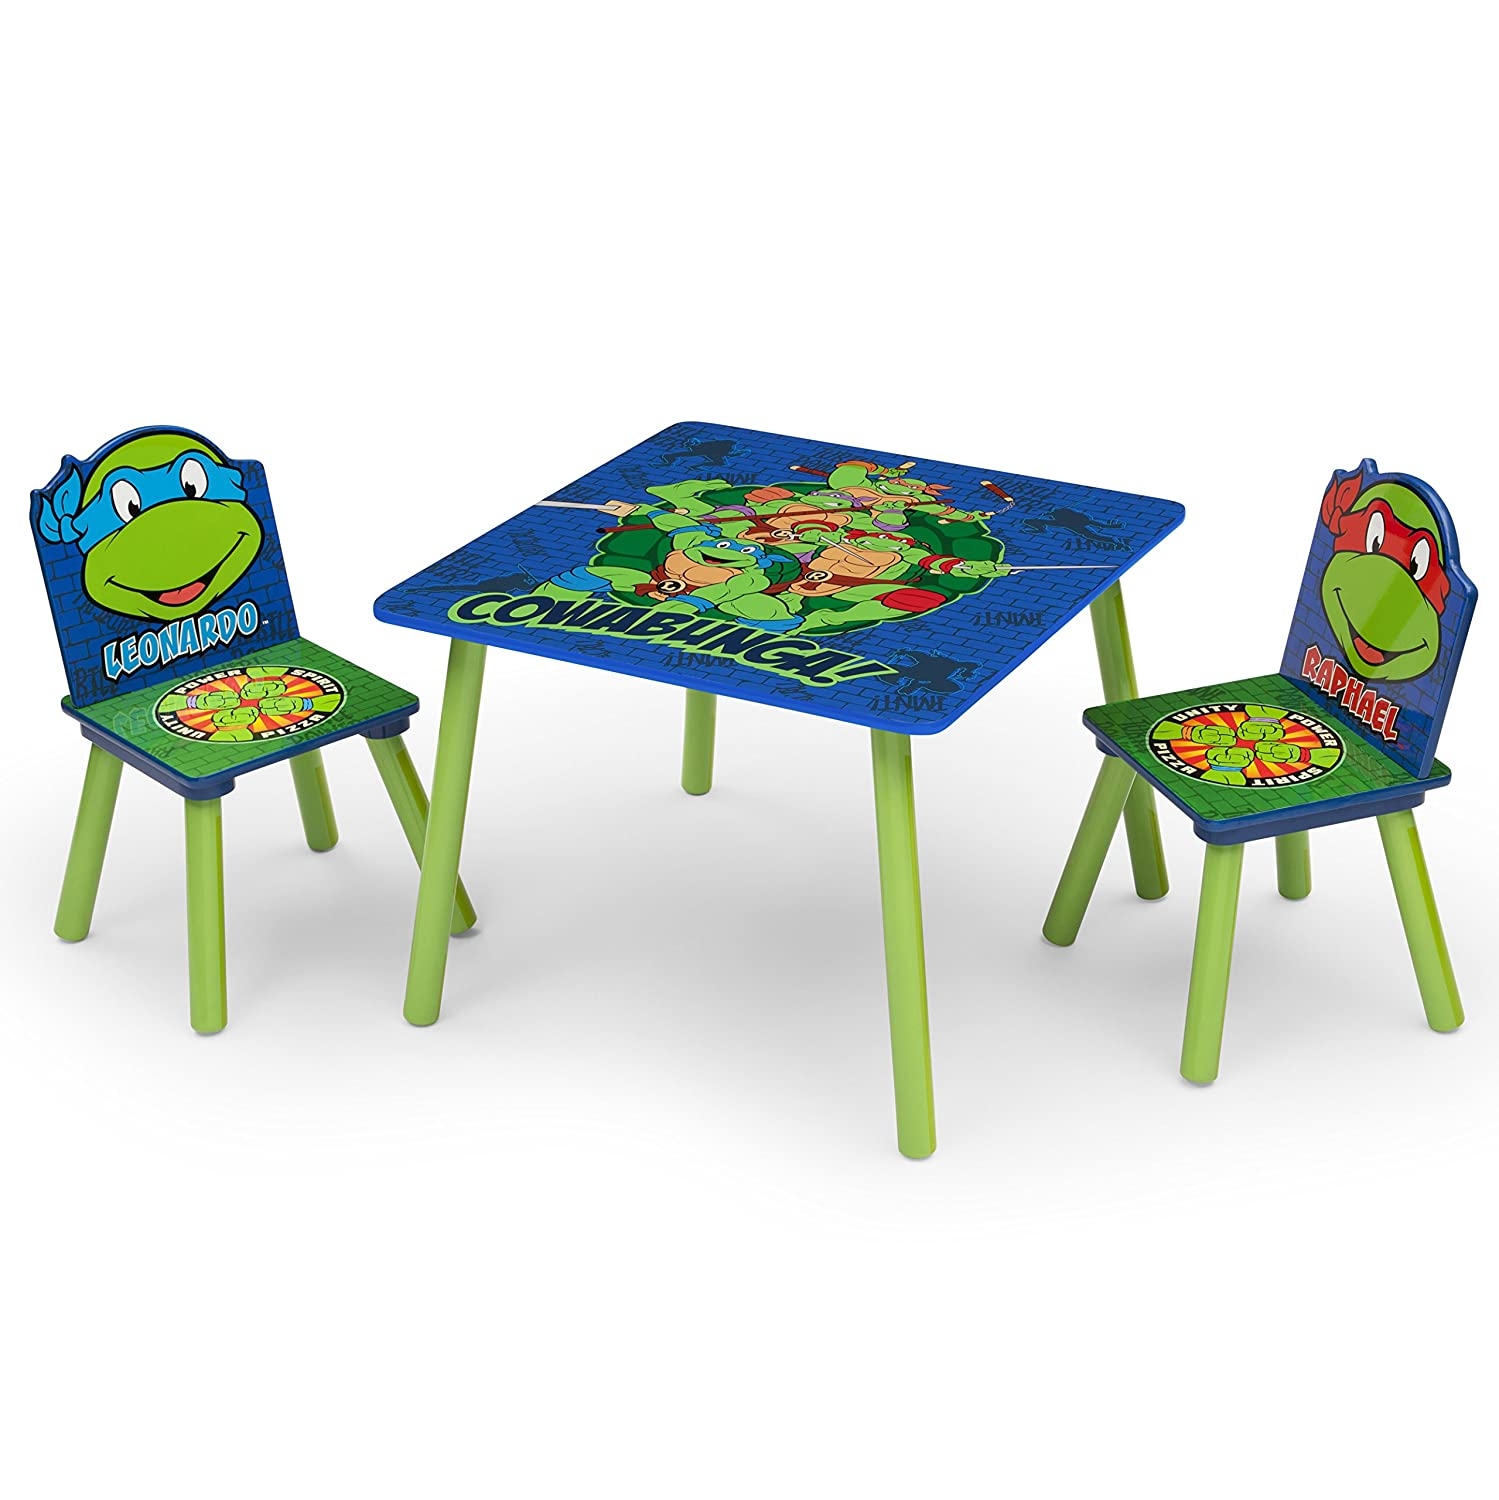 Amazon.com: Delta Children Table & Chair Set, Nickelodeon ...